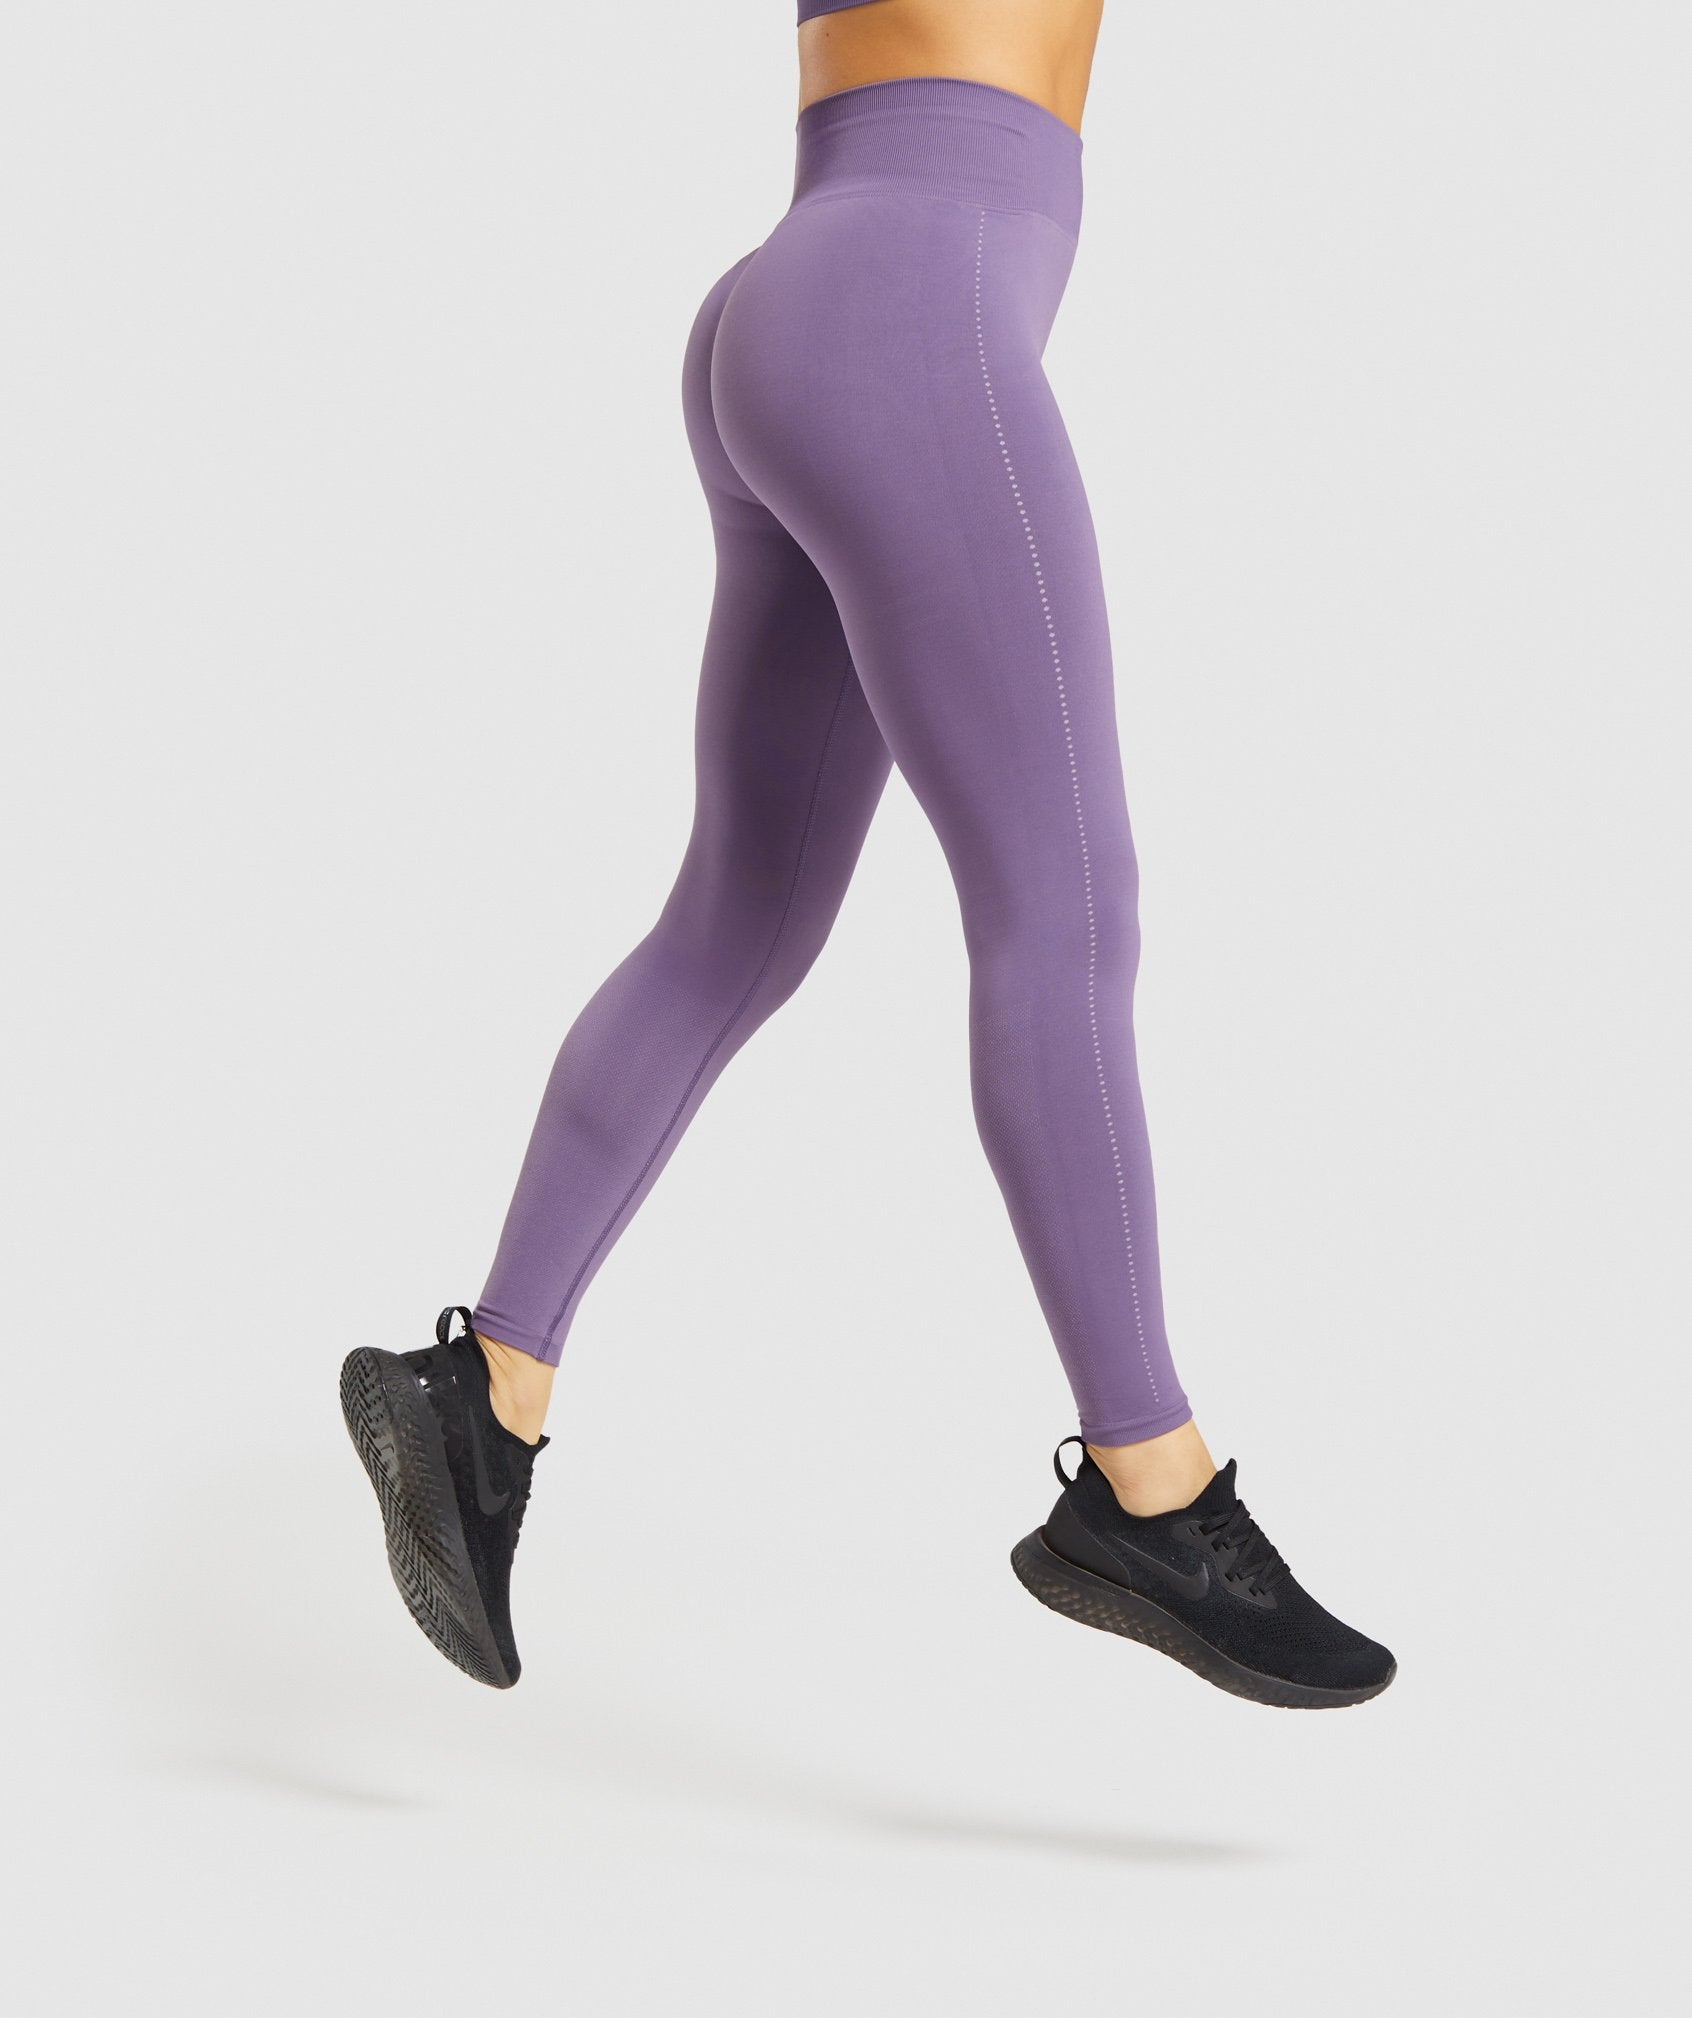 Classier: Buy Gymshark Breeze Lightweight Seamless Tights - Purple - Gymshark